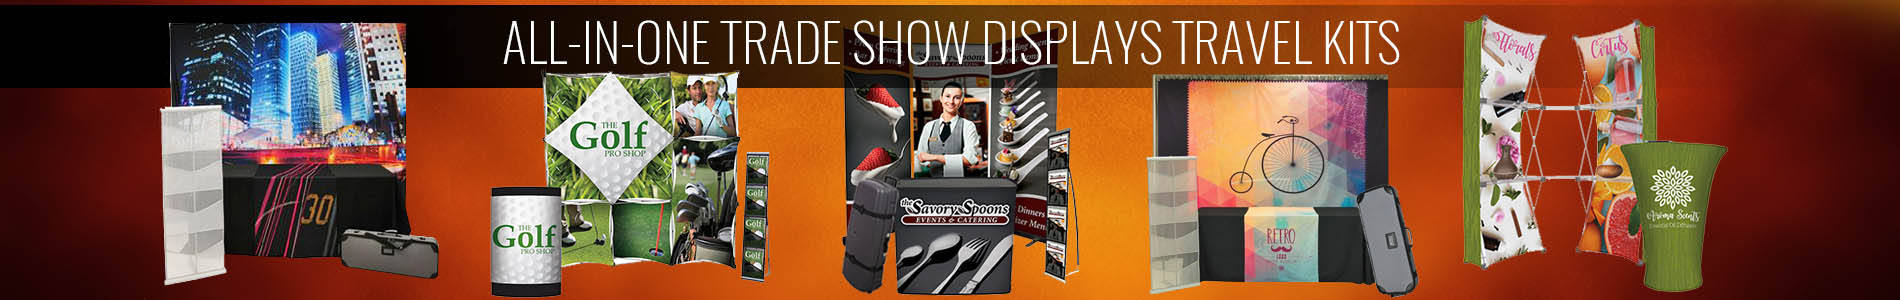 Trade Show Displays Travel Kits